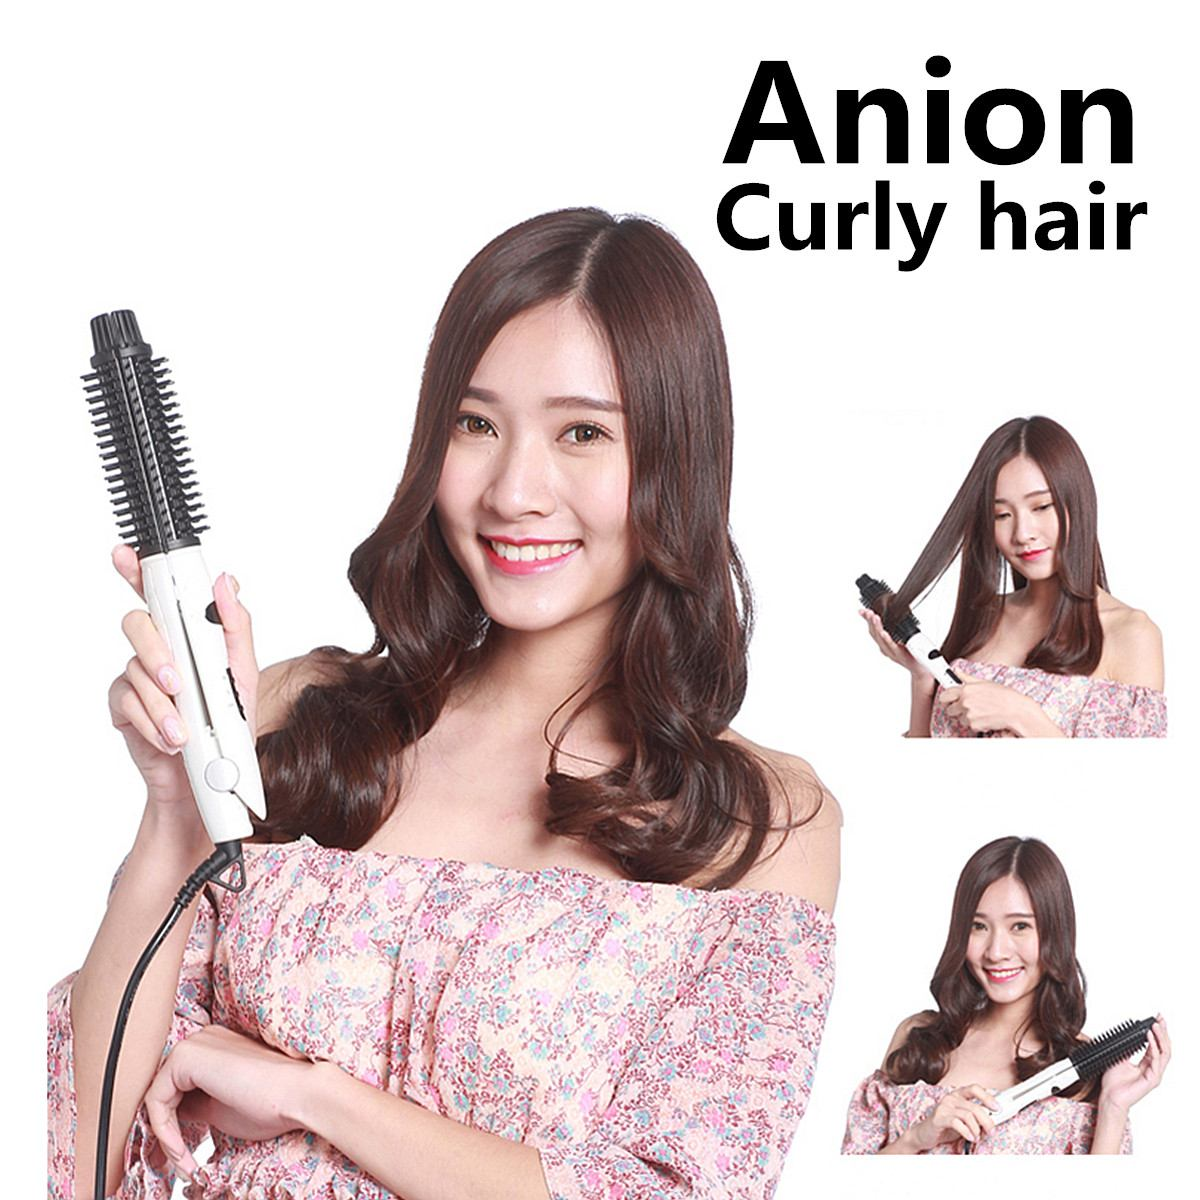 4in1 100-240V Hair Straightener Curler Wand Curling Iron Brush Roller Dual Ionic Ceramic Professional EU Plug Rapid Heating Safe4in1 100-240V Hair Straightener Curler Wand Curling Iron Brush Roller Dual Ionic Ceramic Professional EU Plug Rapid Heating Safe